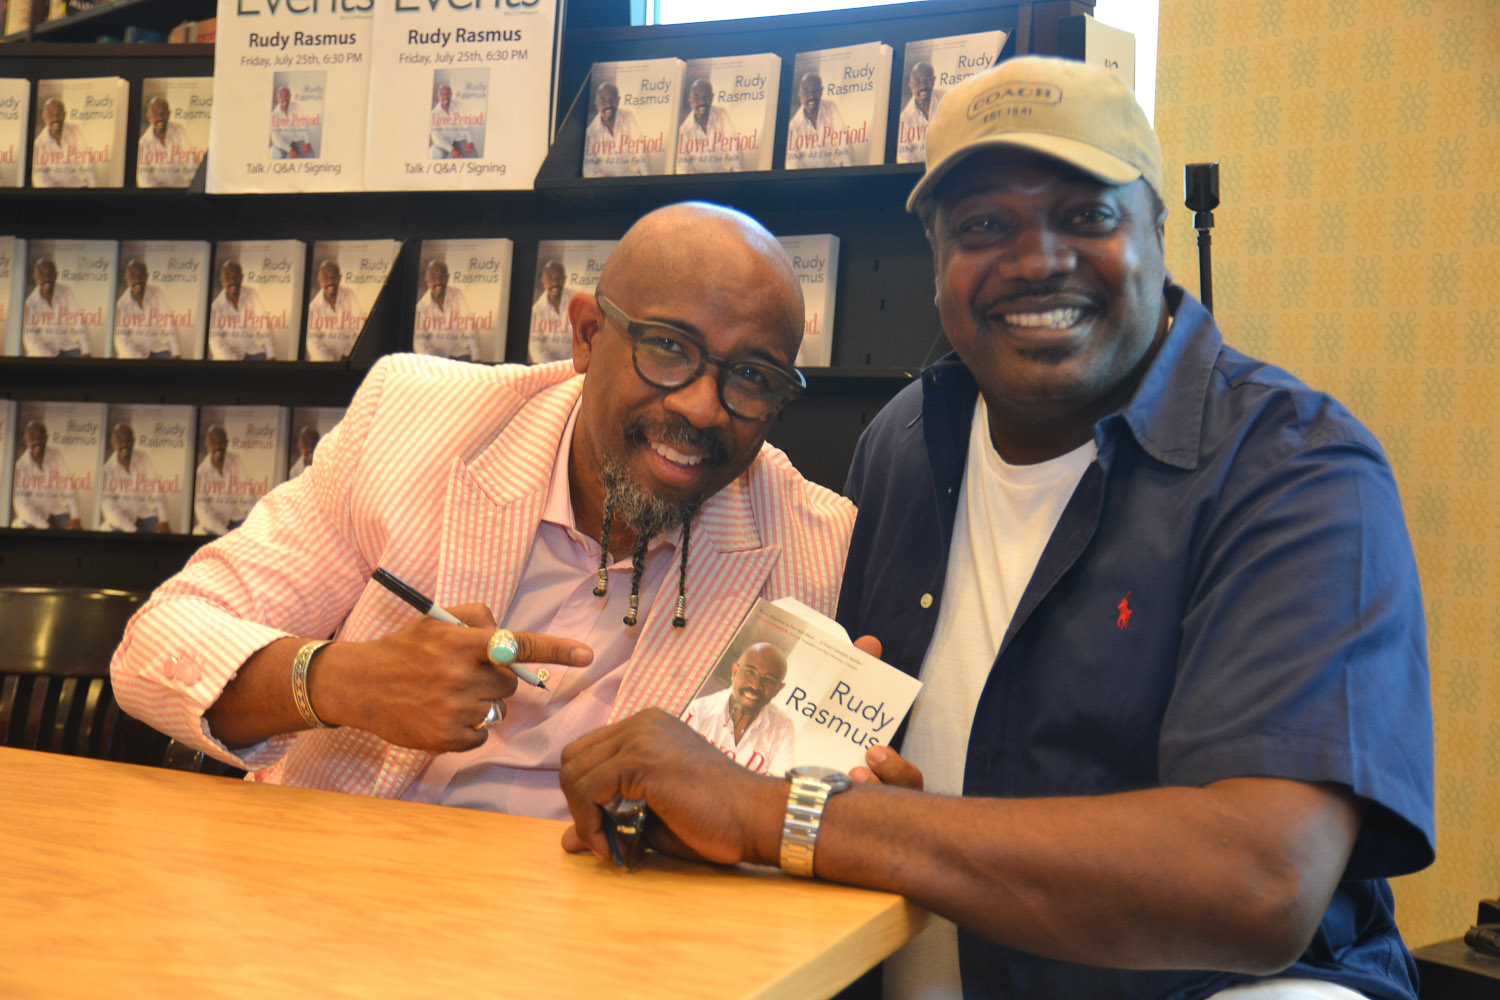 Paster Rudy book signing -0207.jpg